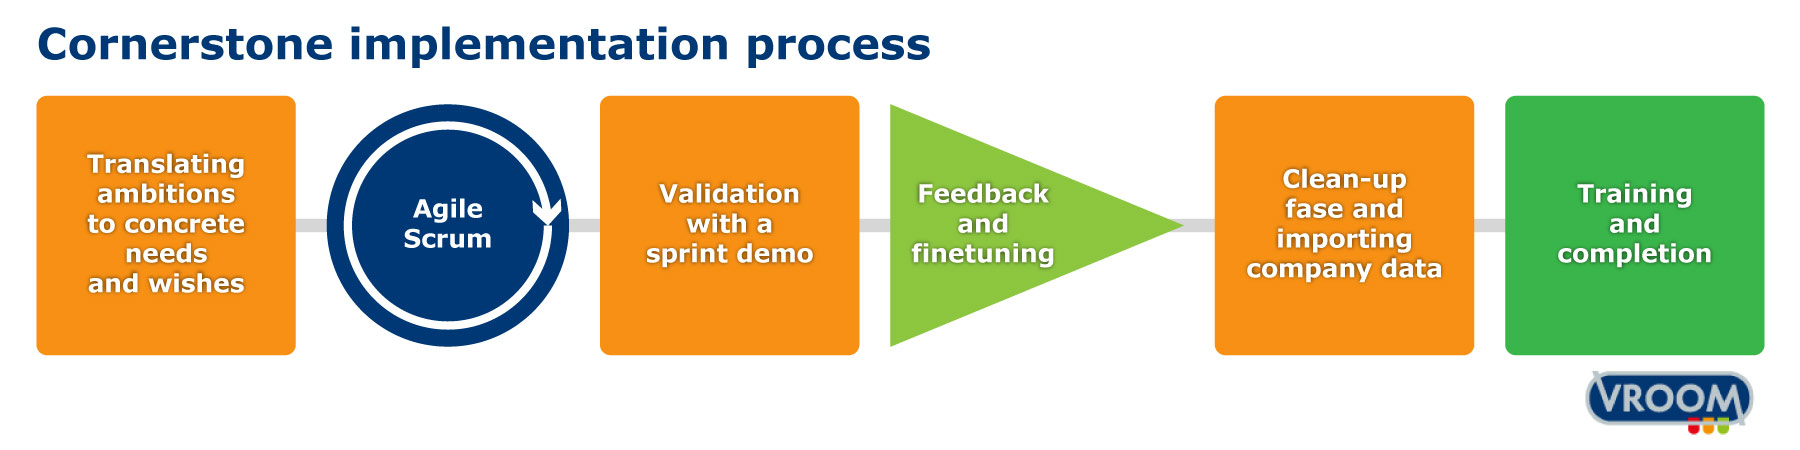 Cornerstone Implementation process